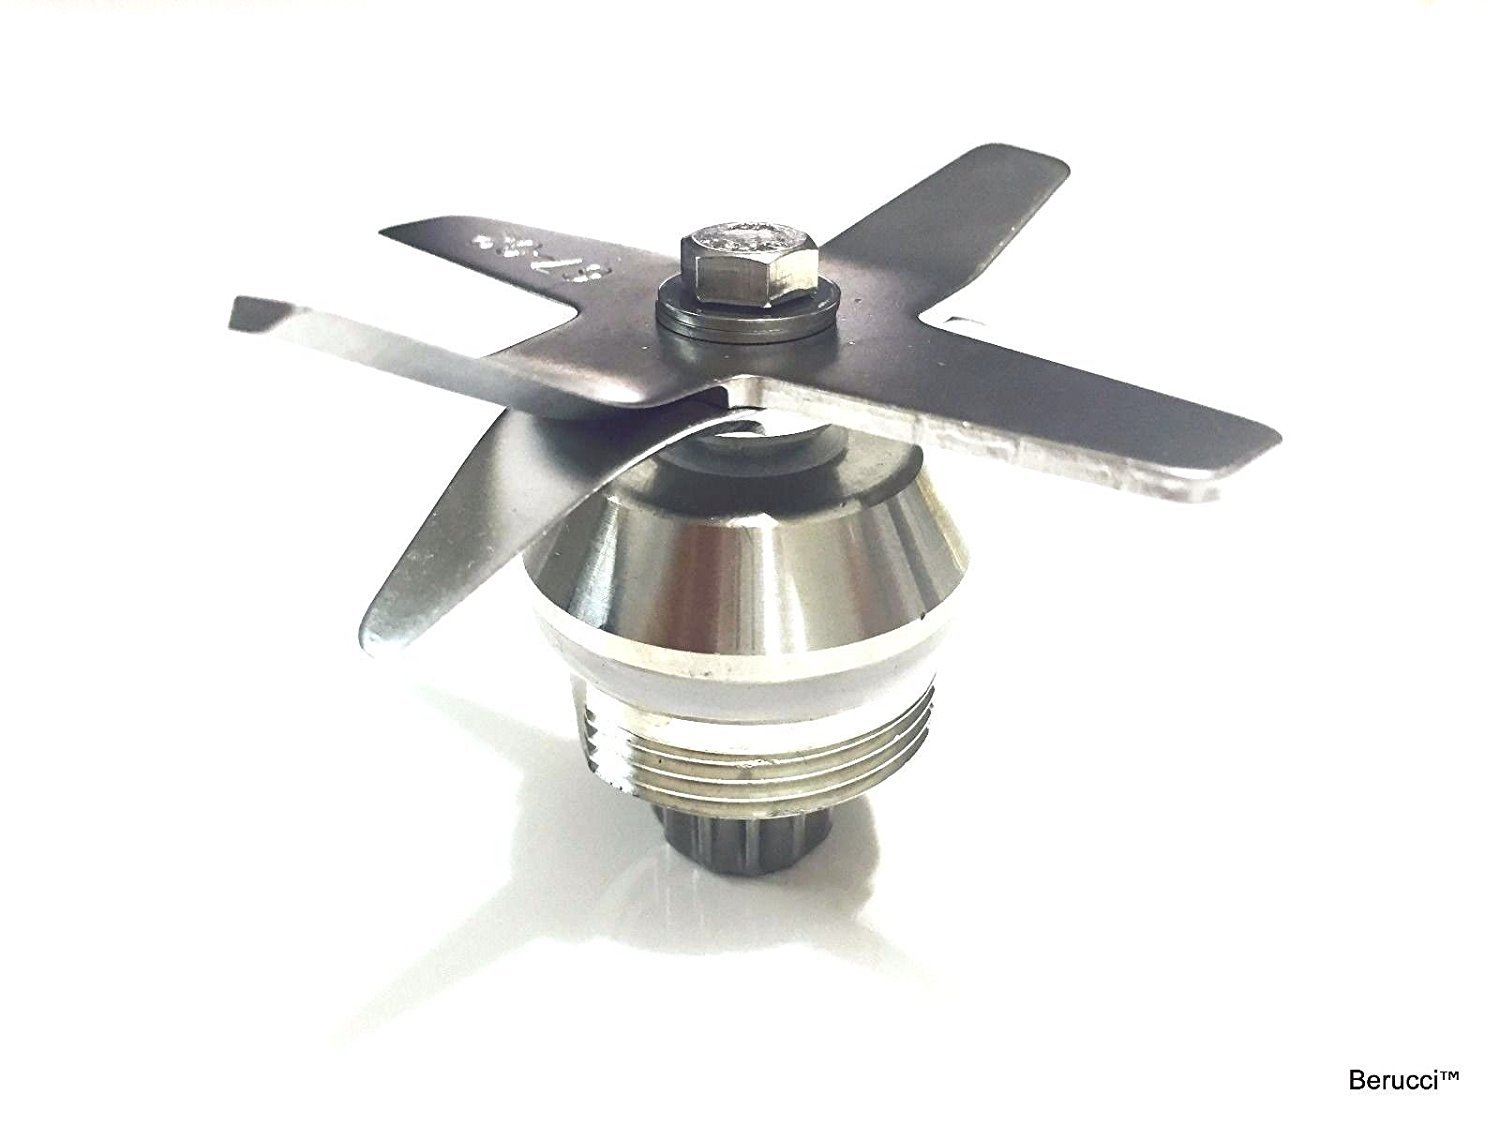 Berucci Stainless Steel Heavy Duty Wet Dry Ice Six Blades and Drive Socket Assembly for Vitamix 1151 1152 by Berucci (Image #5)